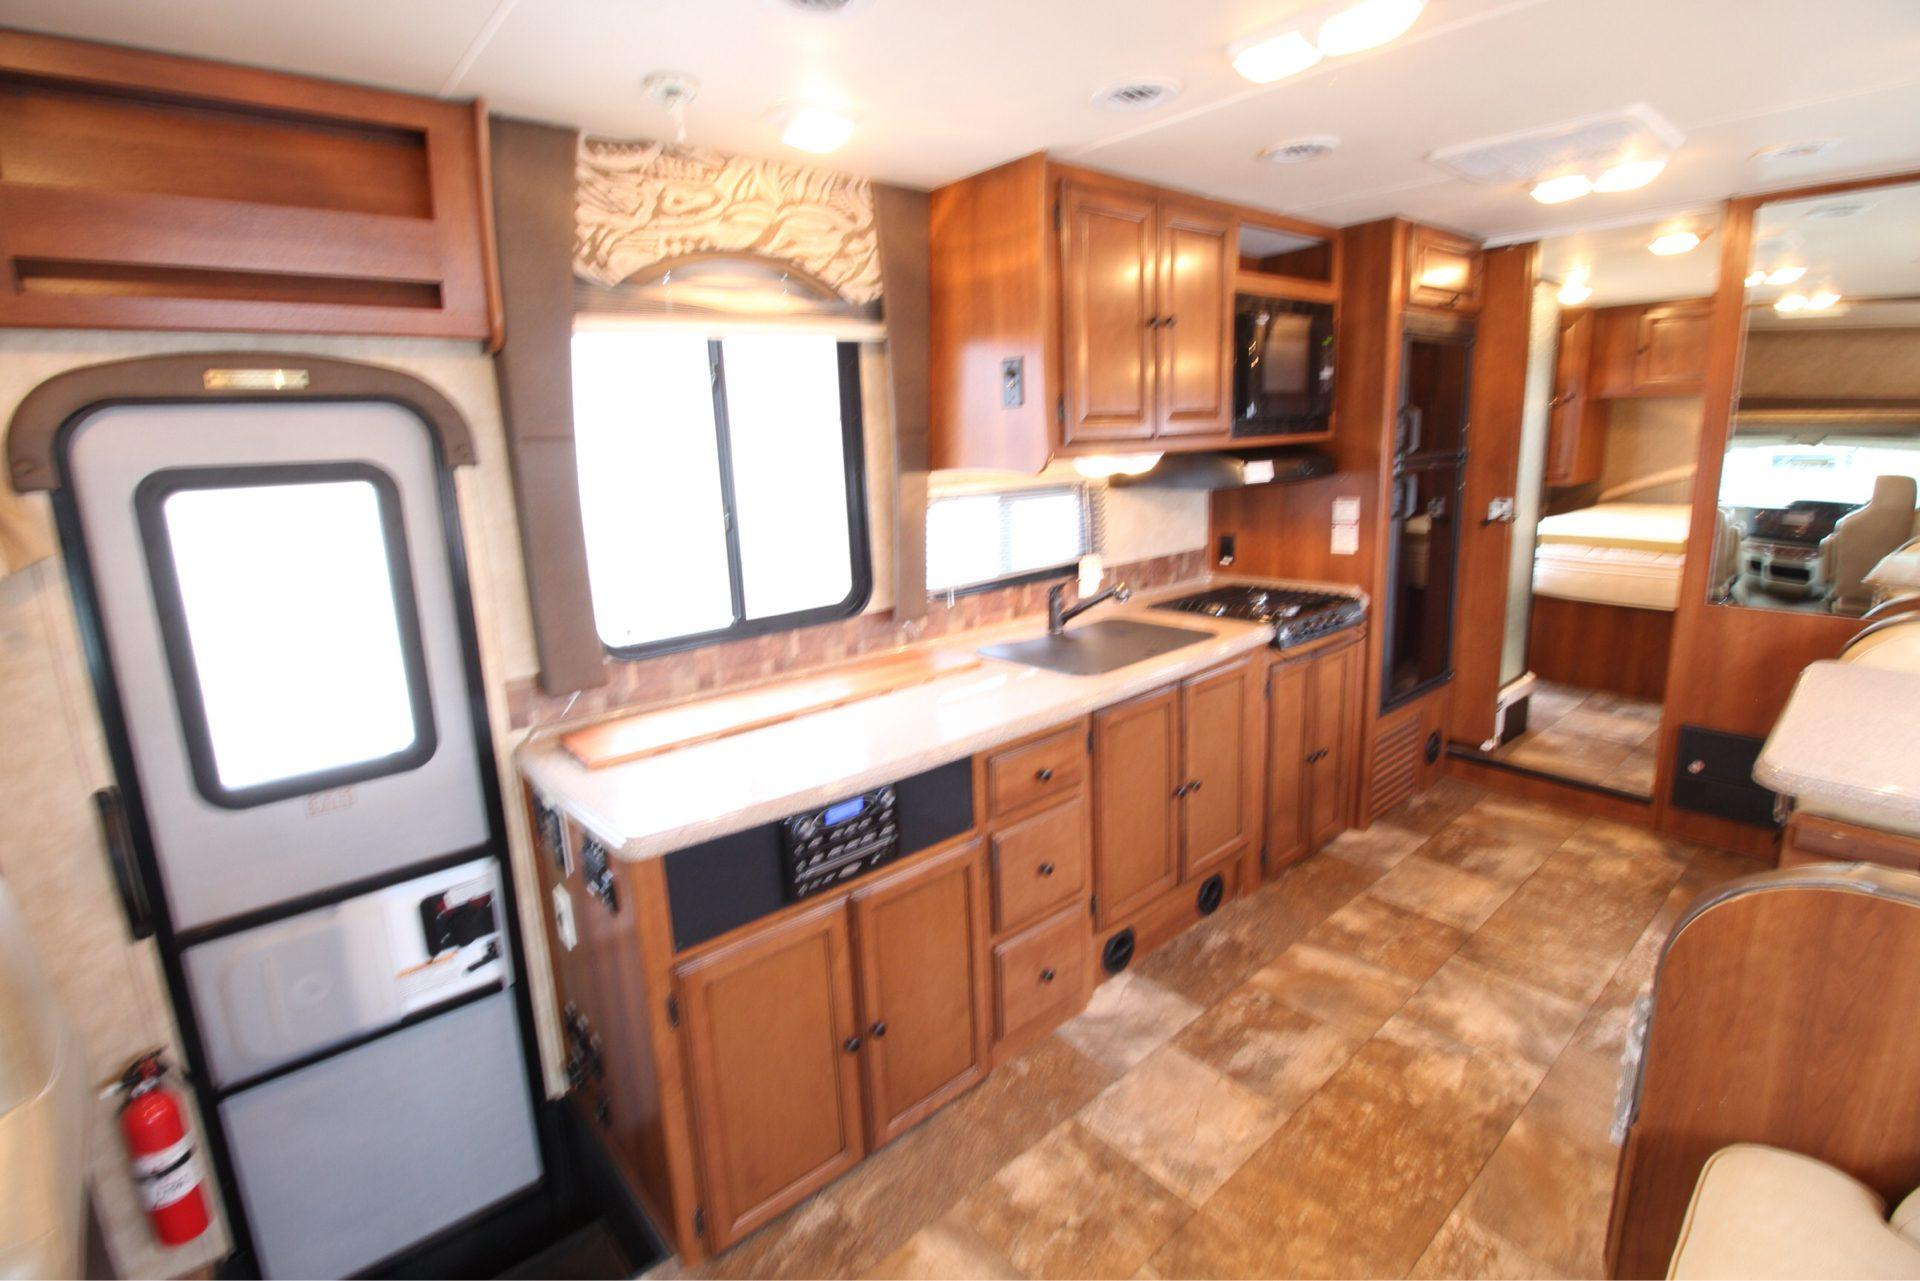 2014 Forest iver RVs 319 in Wolfforth, Texas